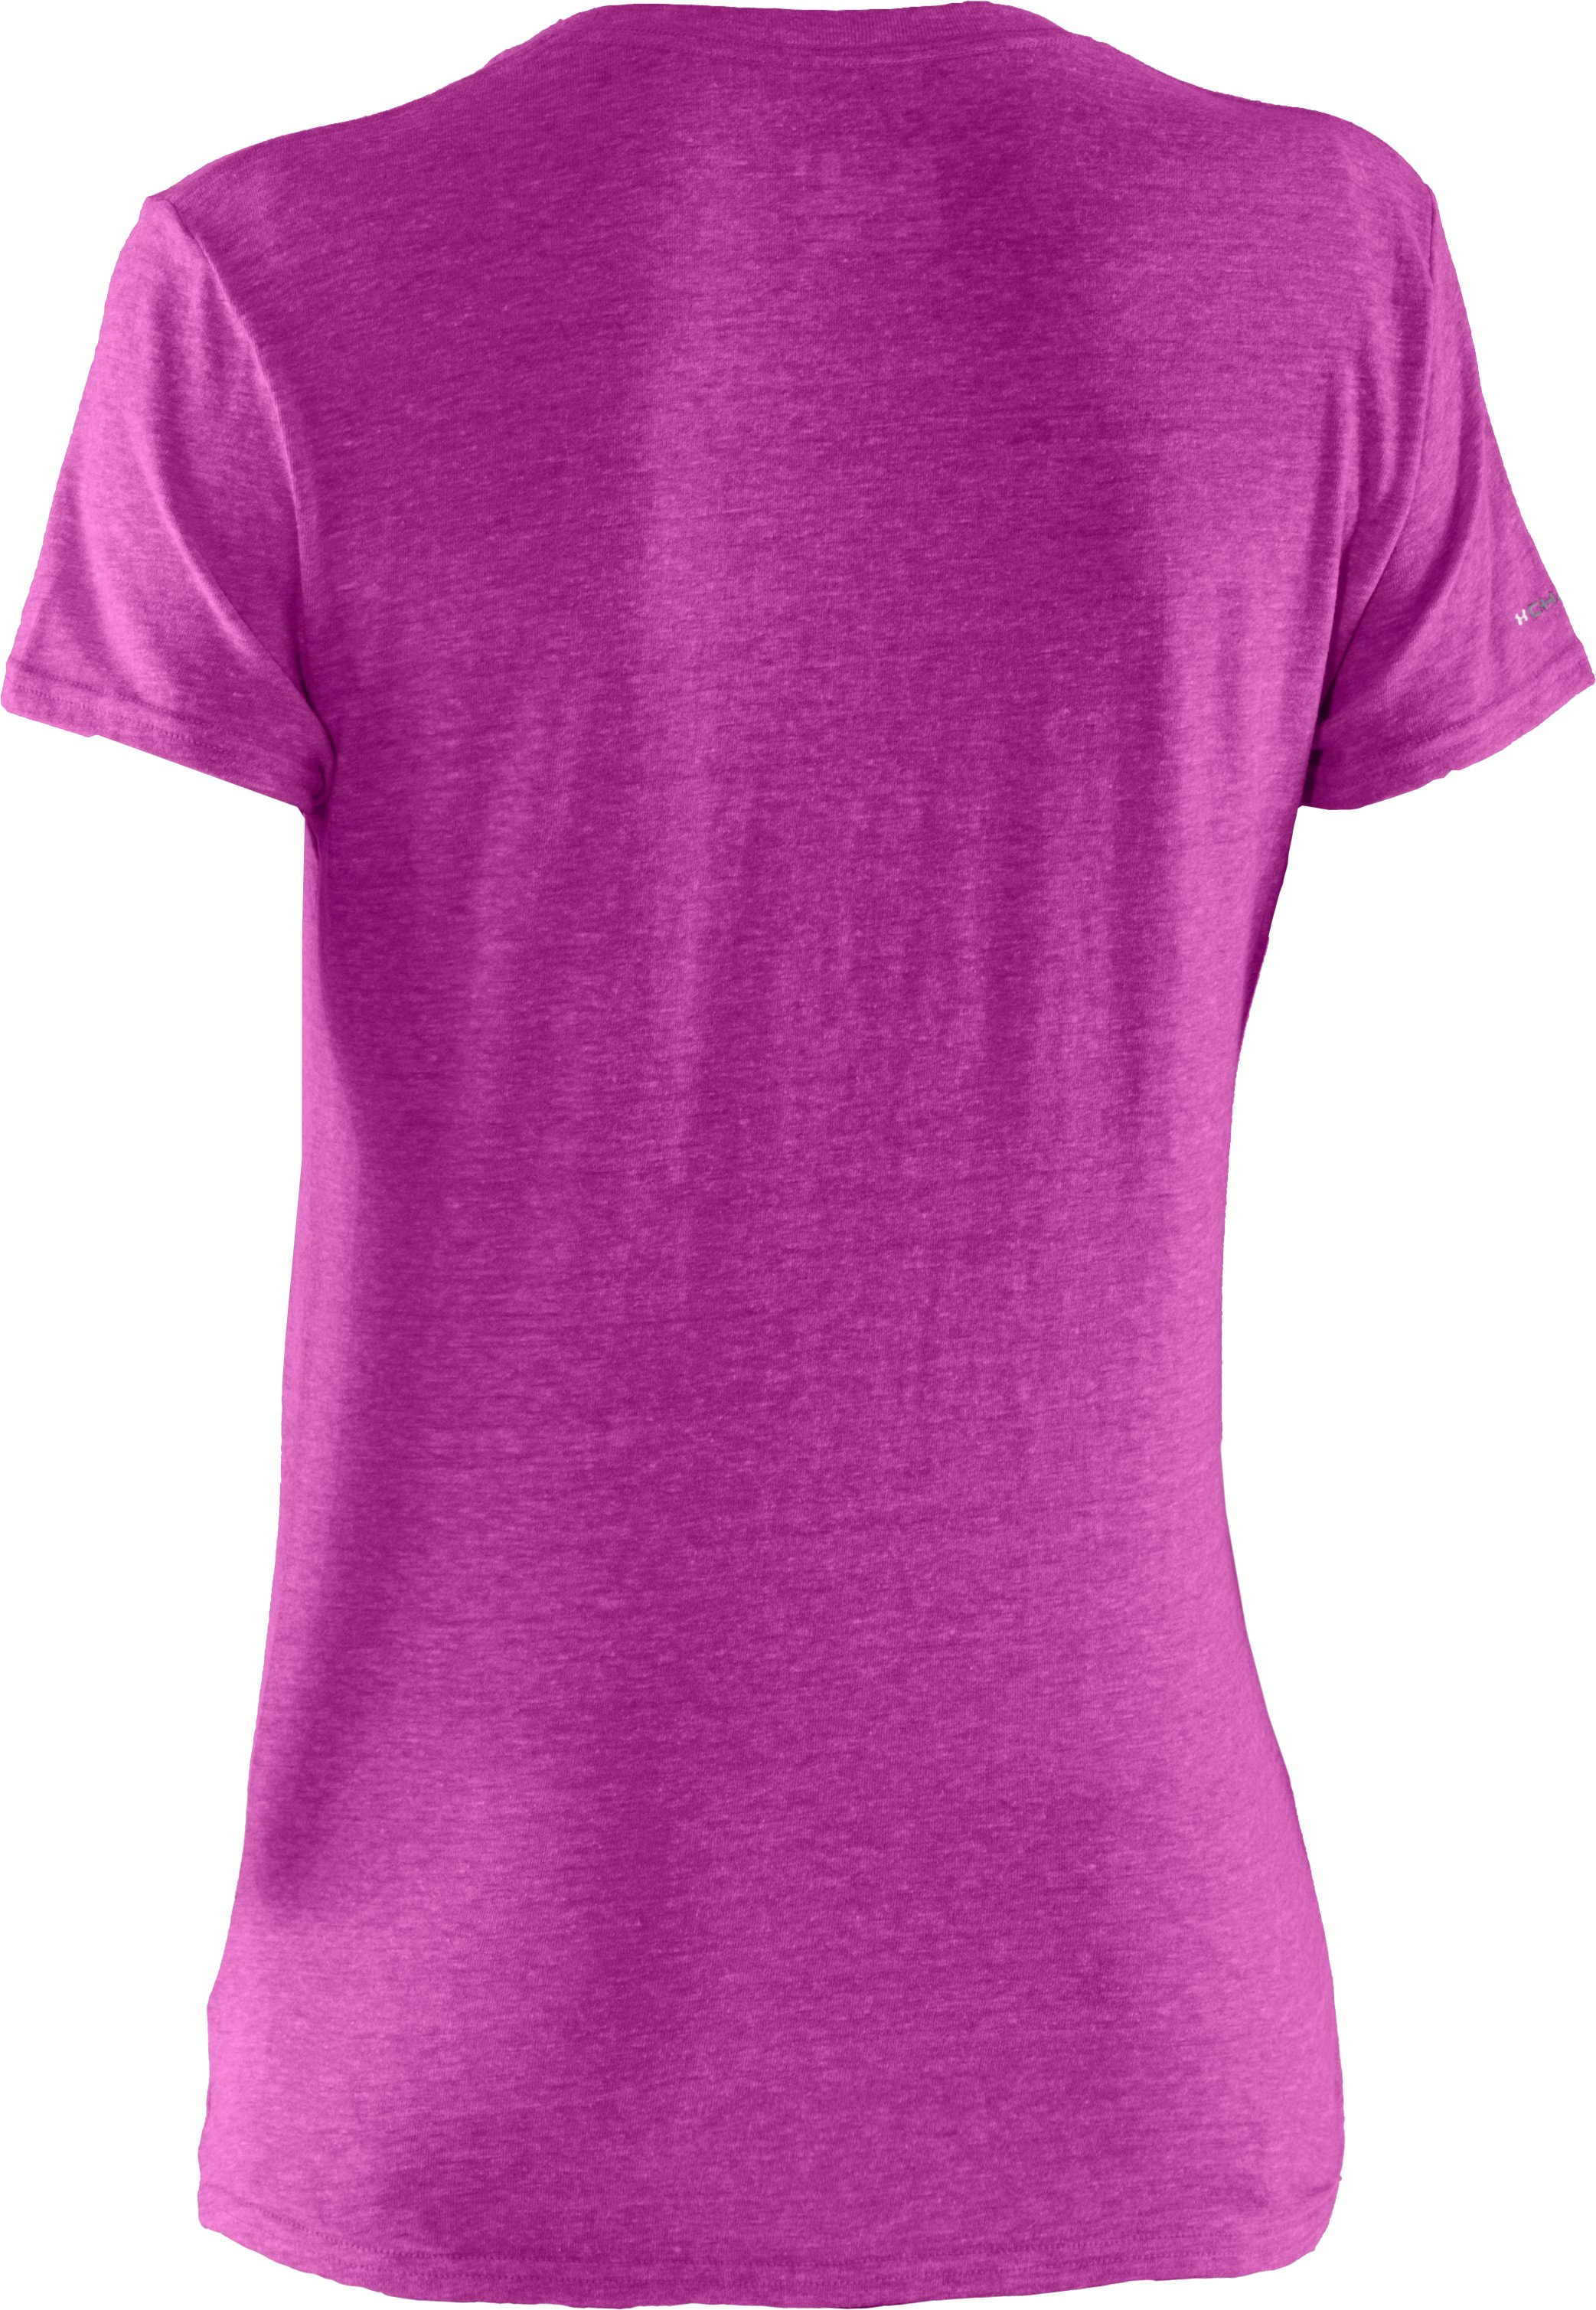 Women's Charged Cotton® Undeniable T-Shirt, STROBE